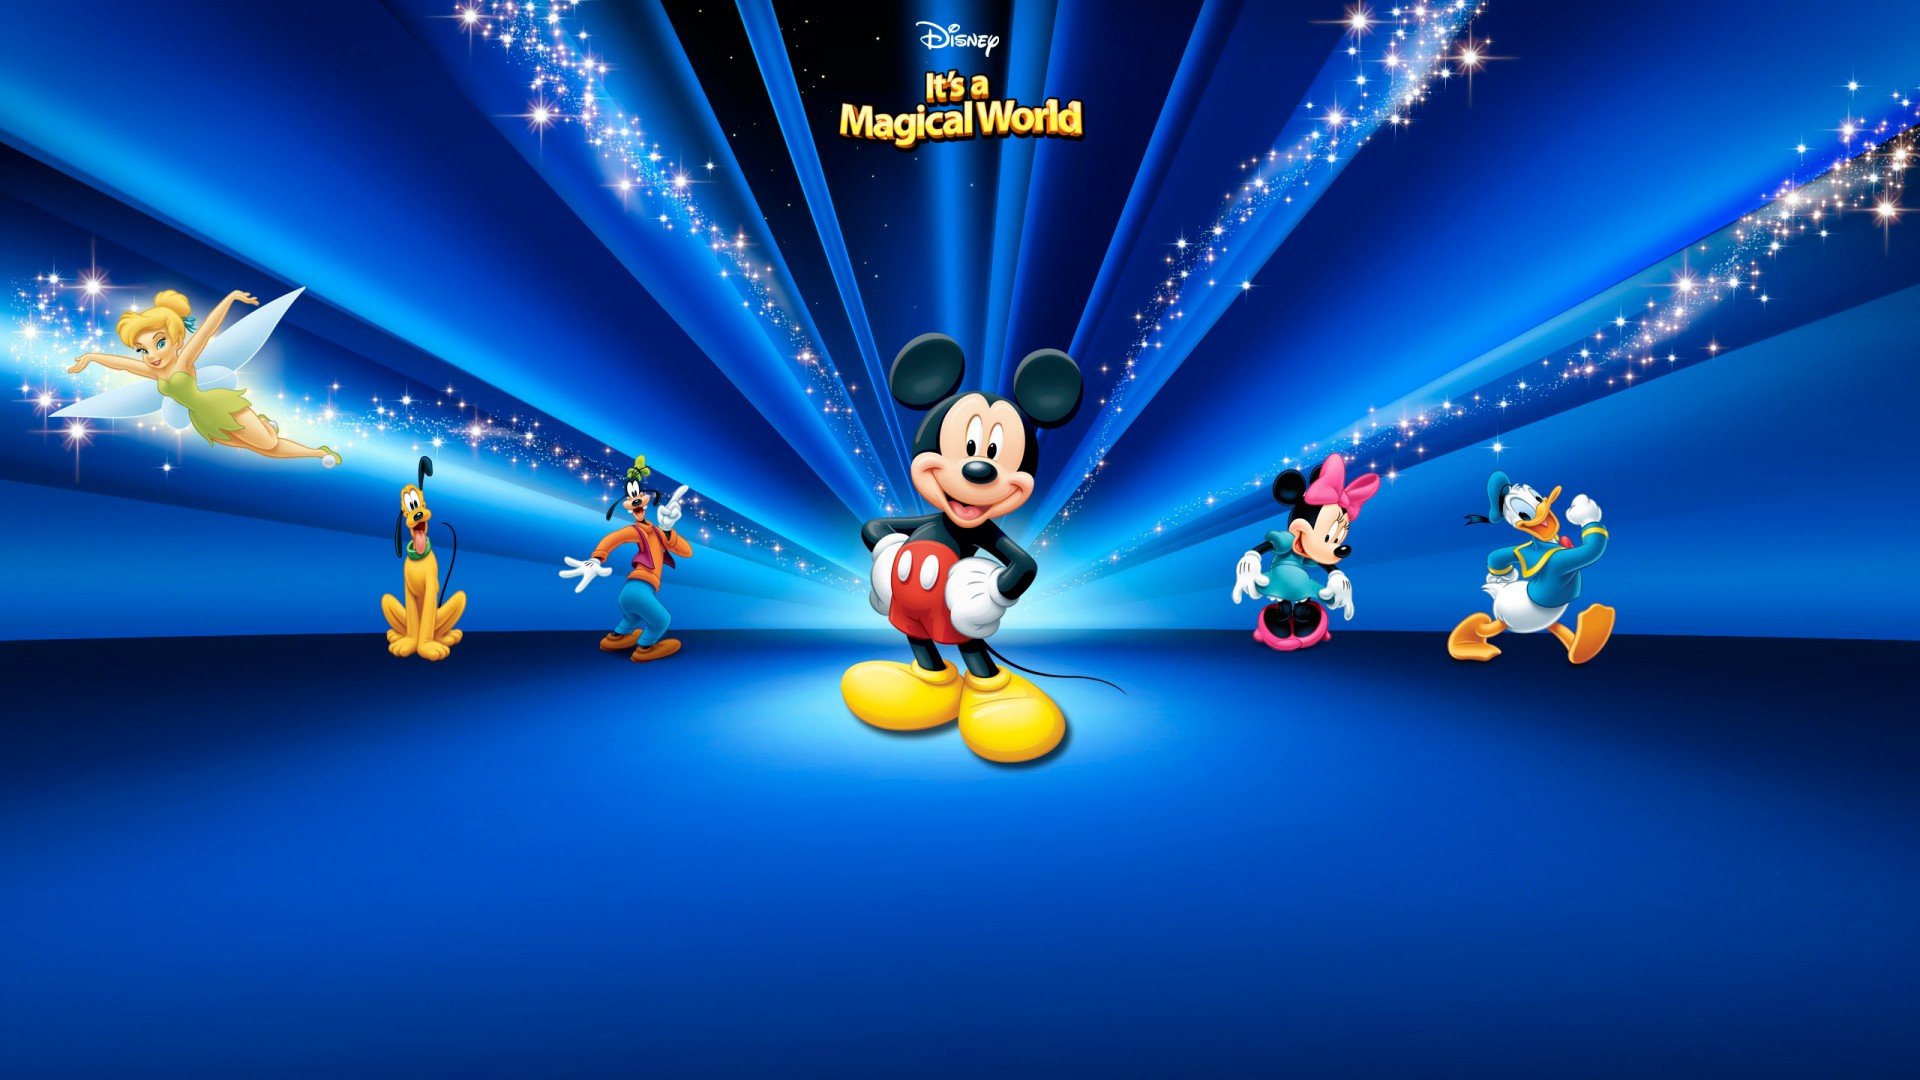 Wallpaper Mickey Mouse 3d Disney Mickey Mouse World Wallpapers Hd Wallpapers Id